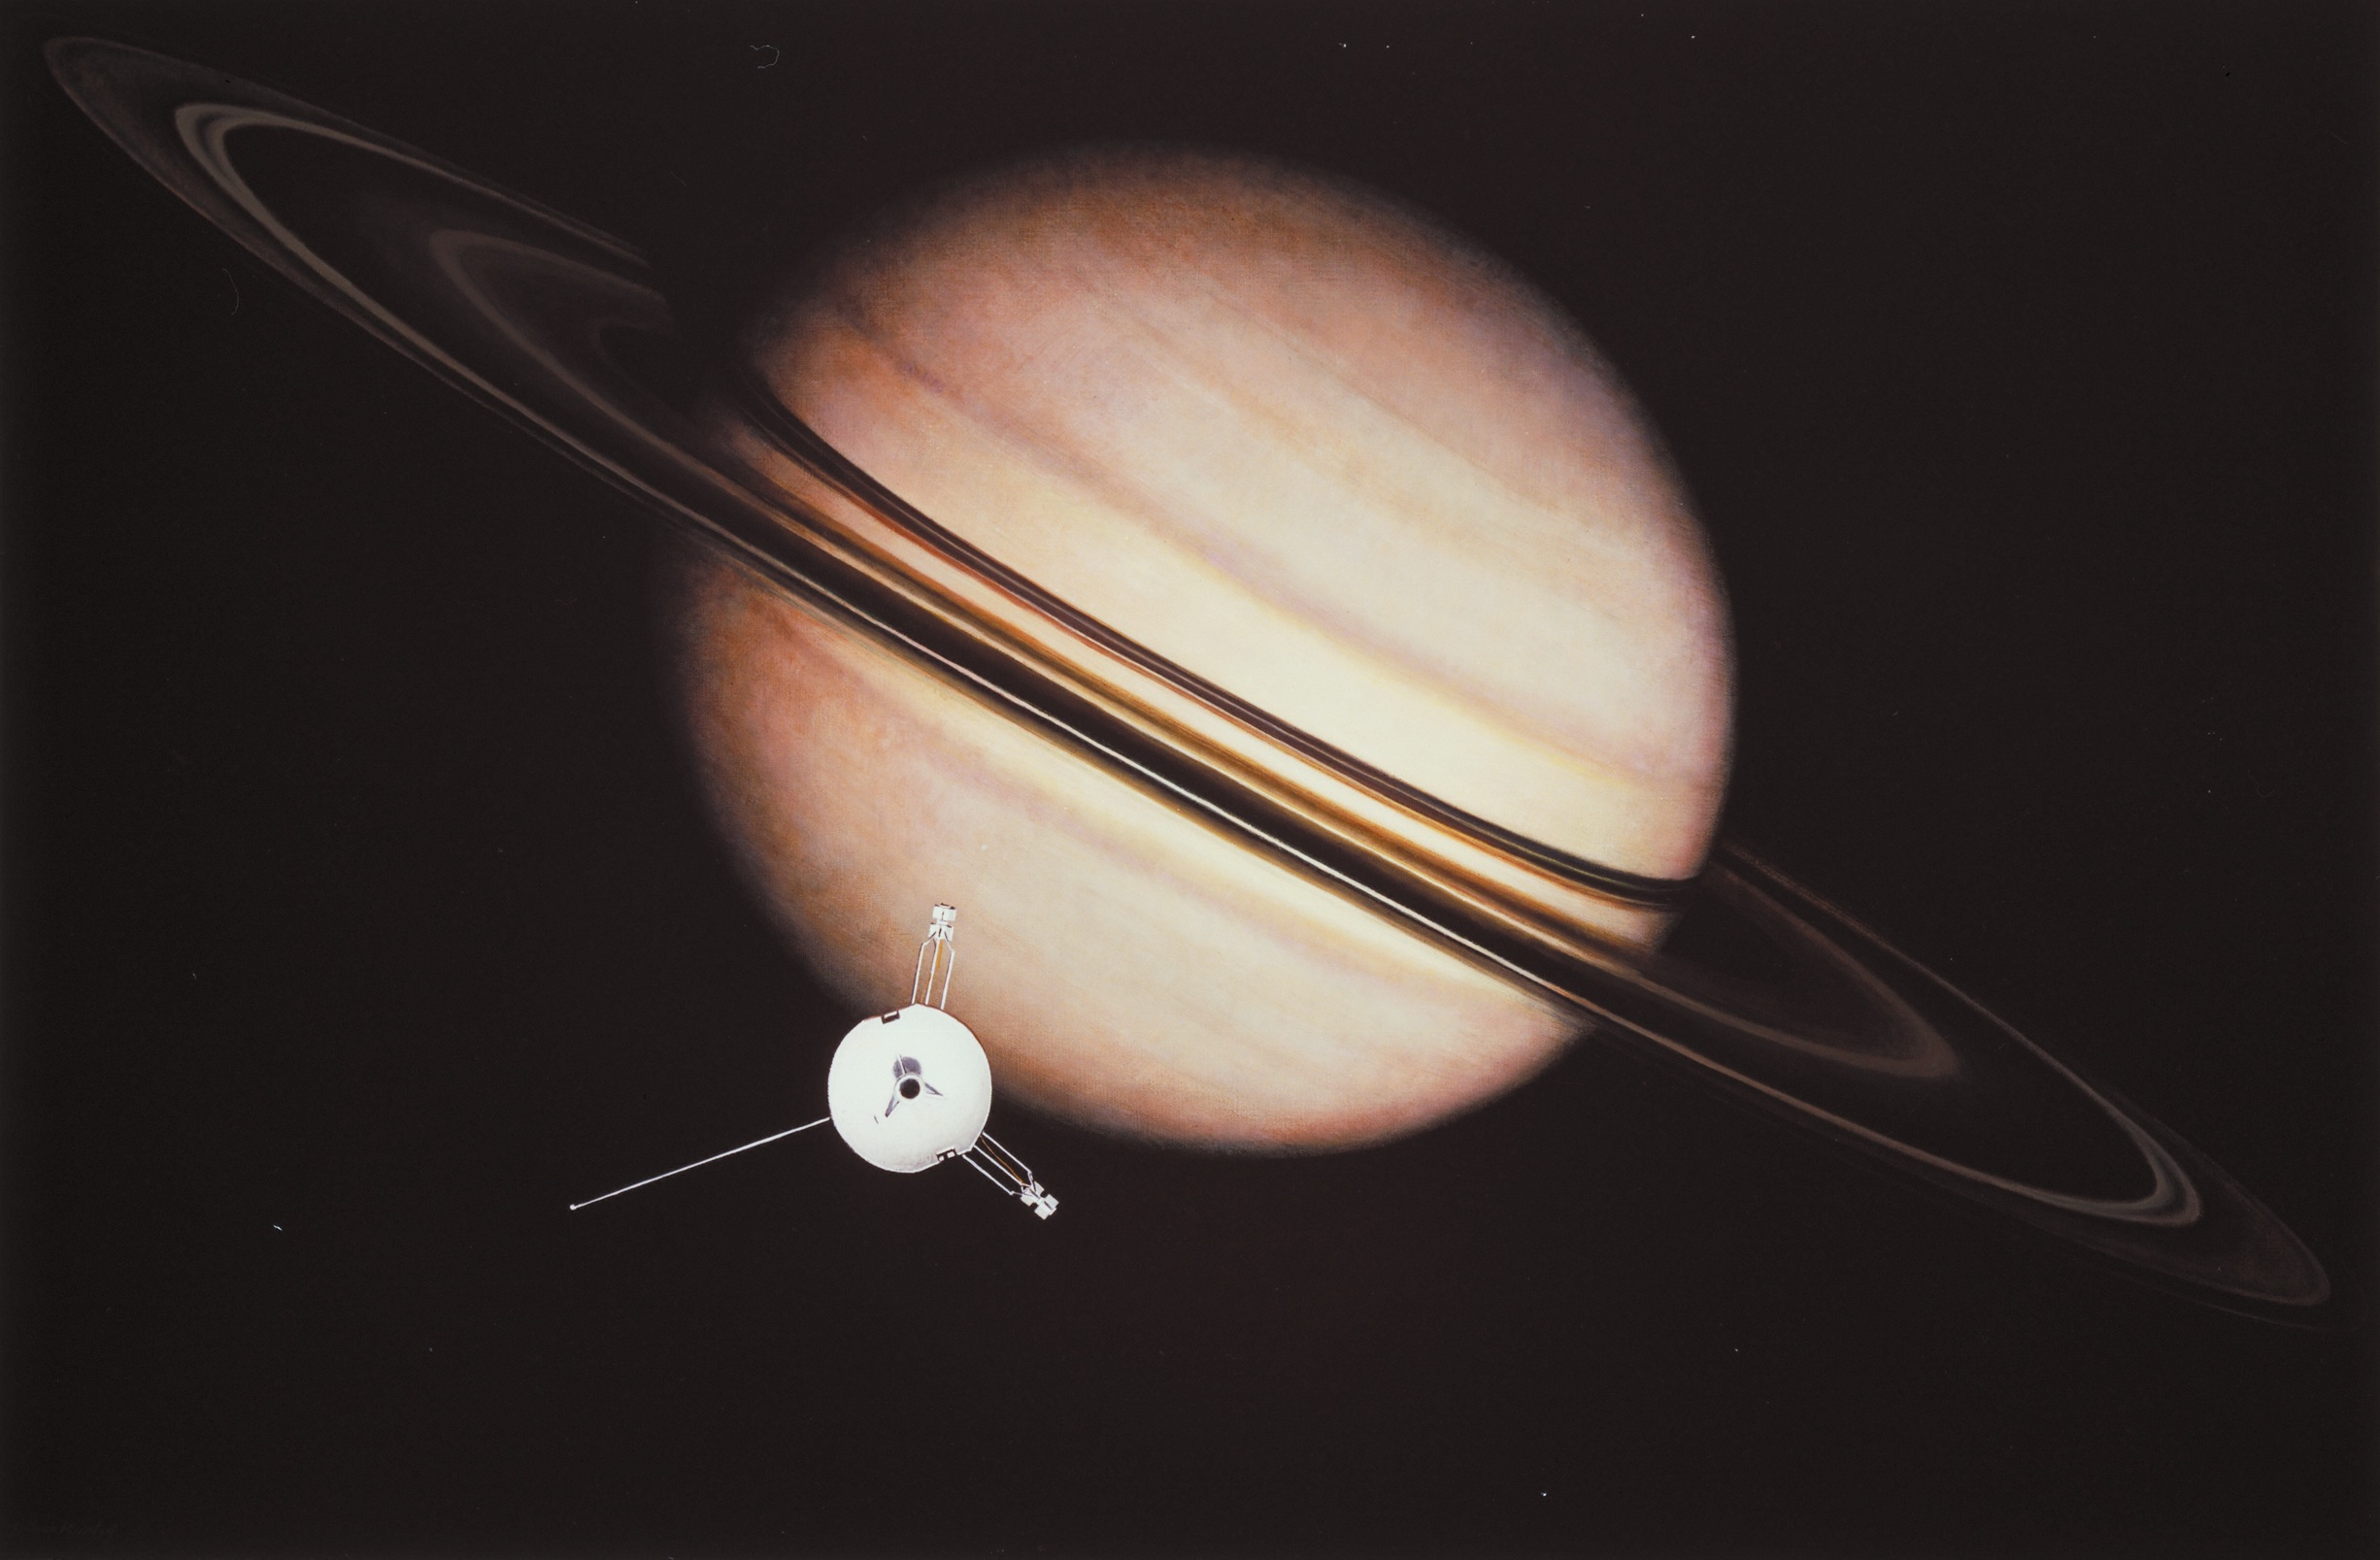 Pioneer 11 at Saturn: Artist's View